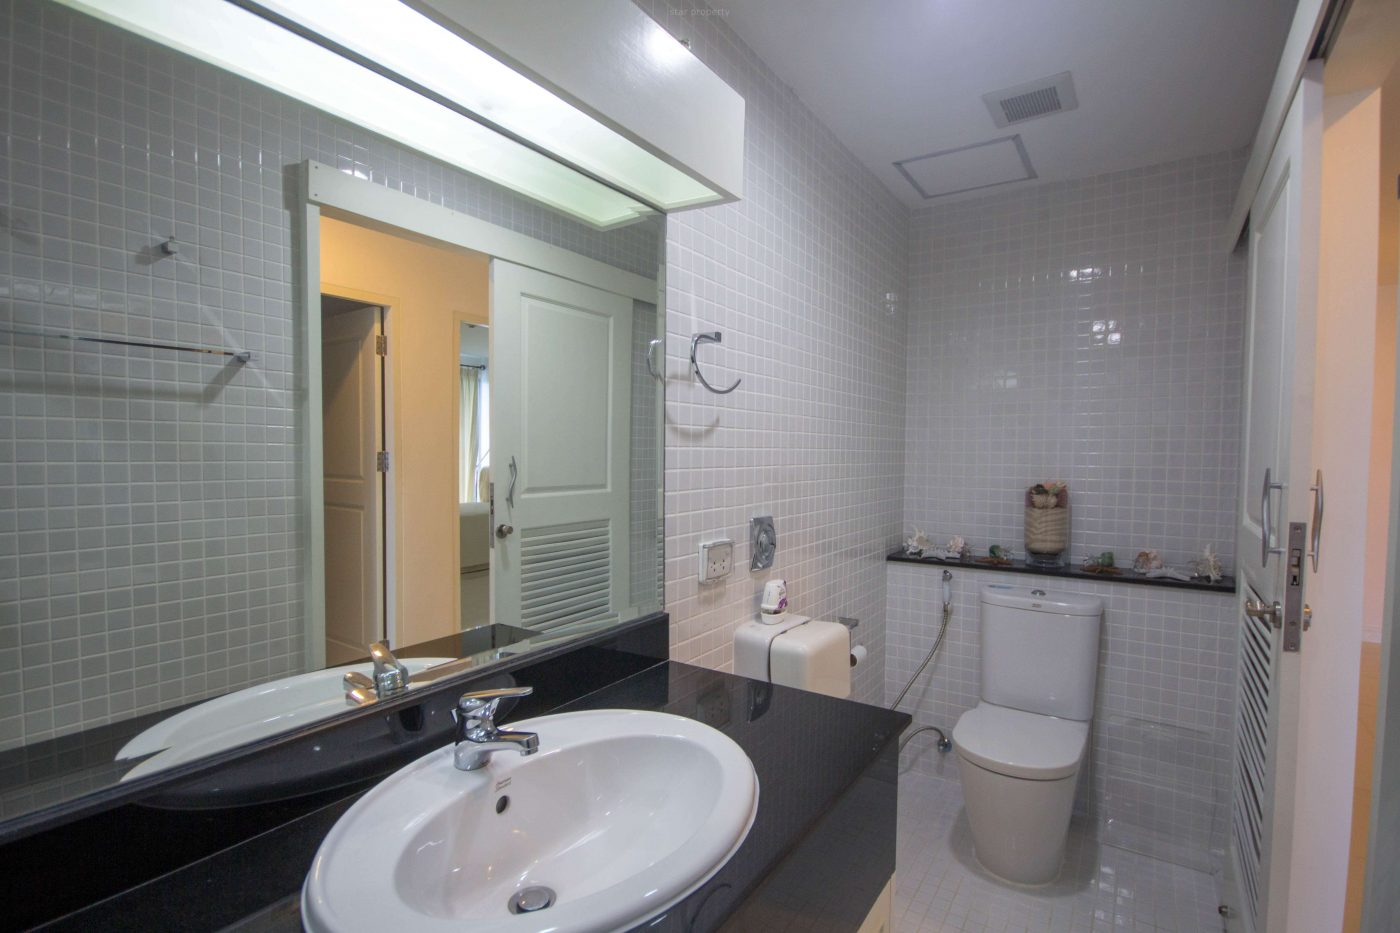 Town View condo for rent